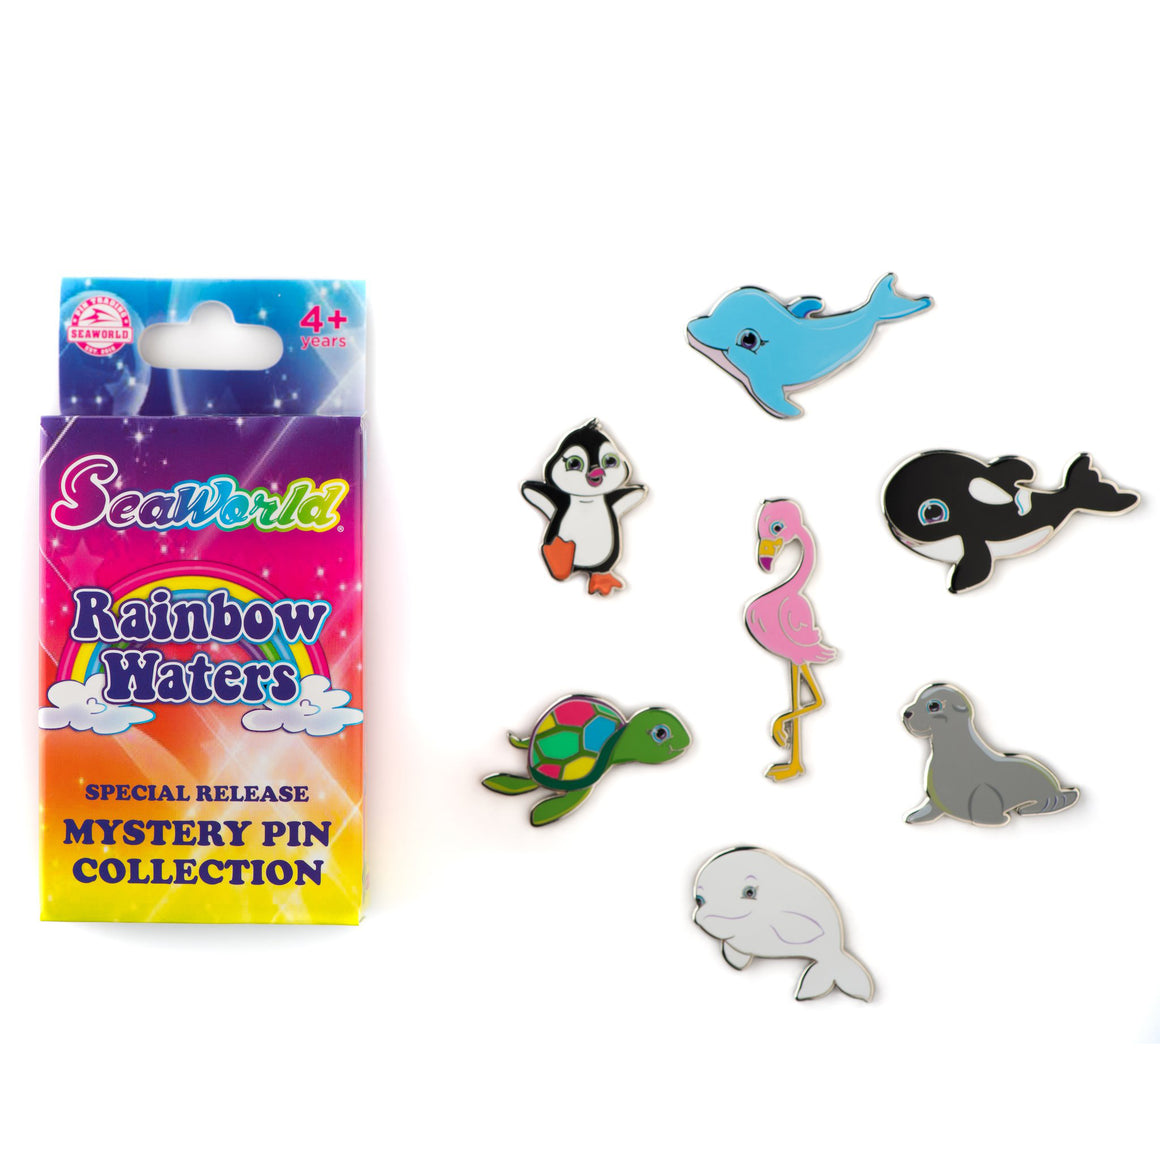 Rainbow Waters - 2 Mystery Pins